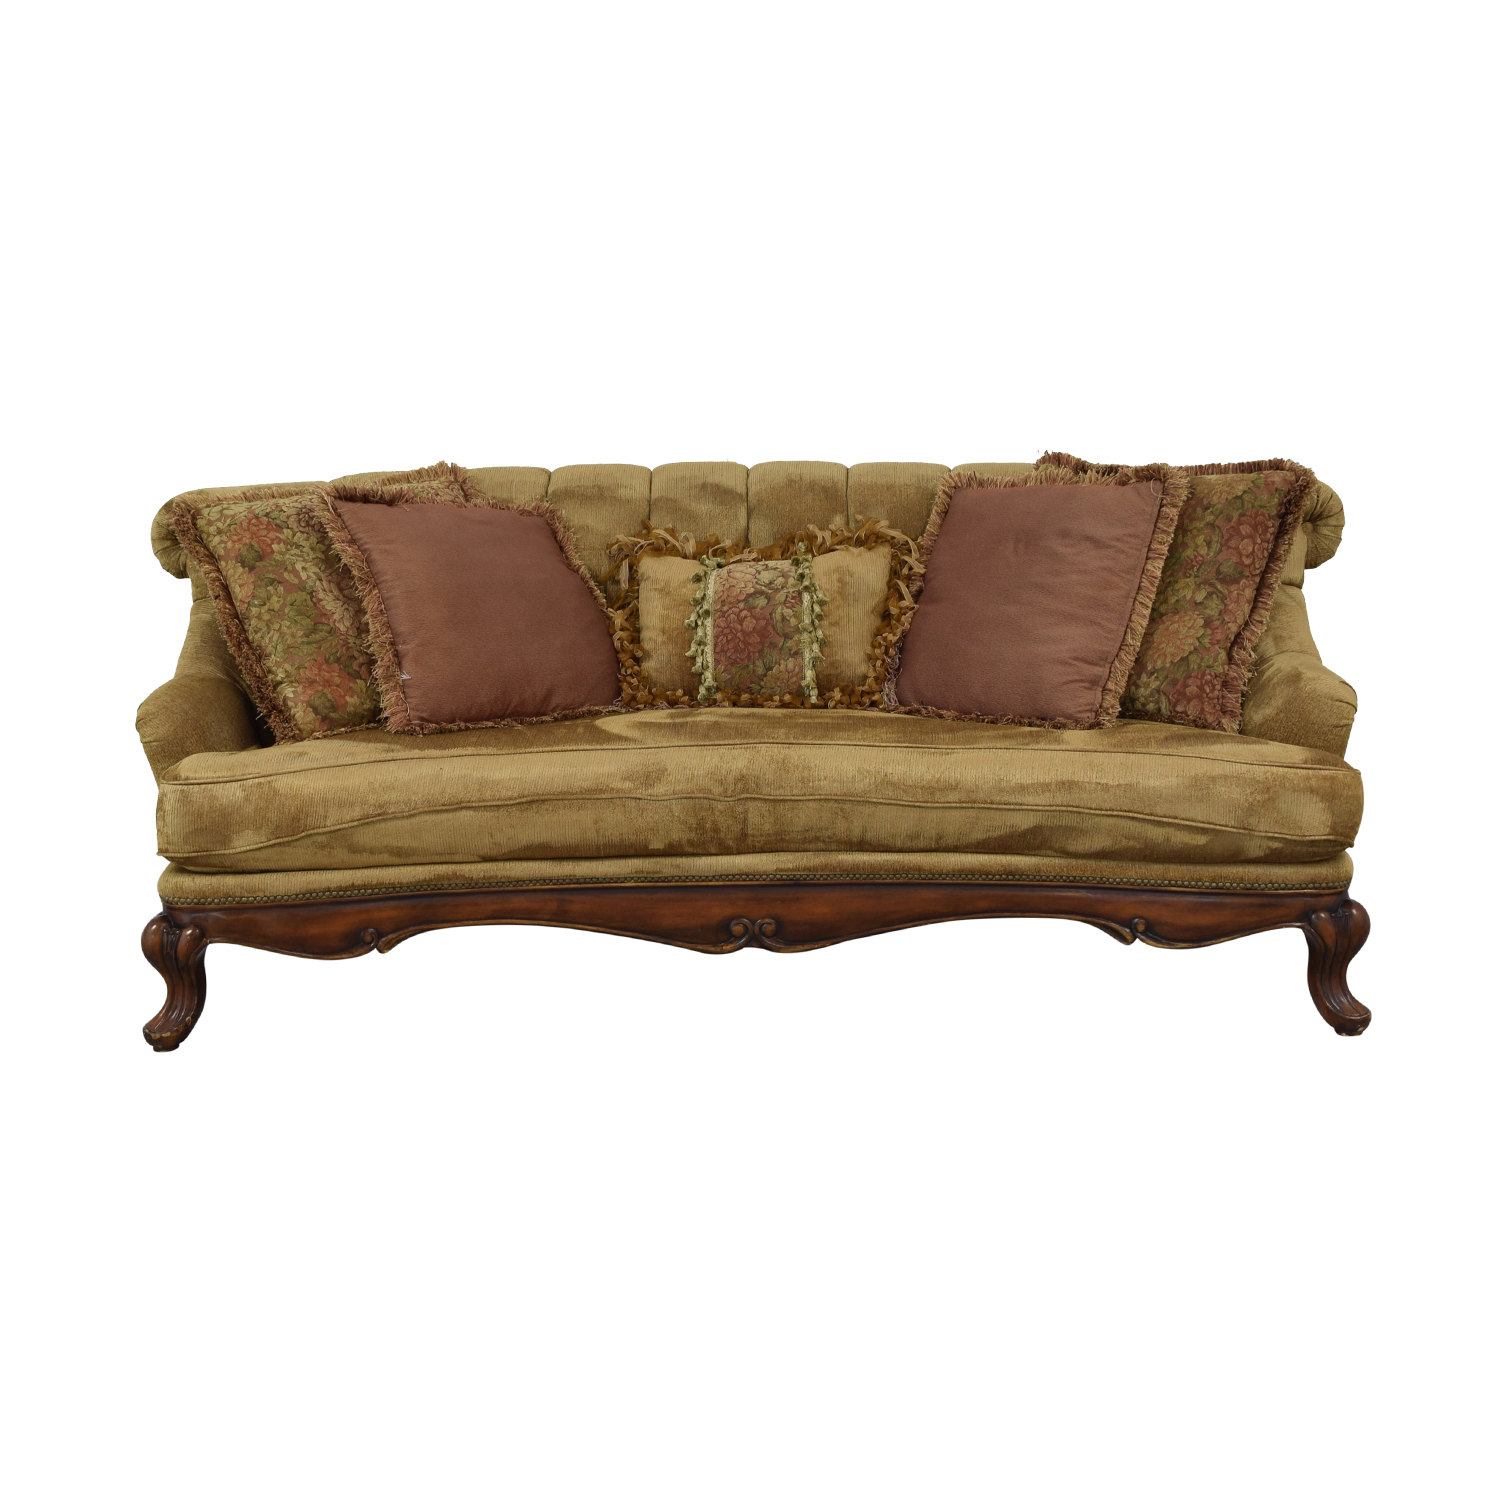 buy Schnadig Composition Collection Sitting Room Sofa Schnadig Classic Sofas